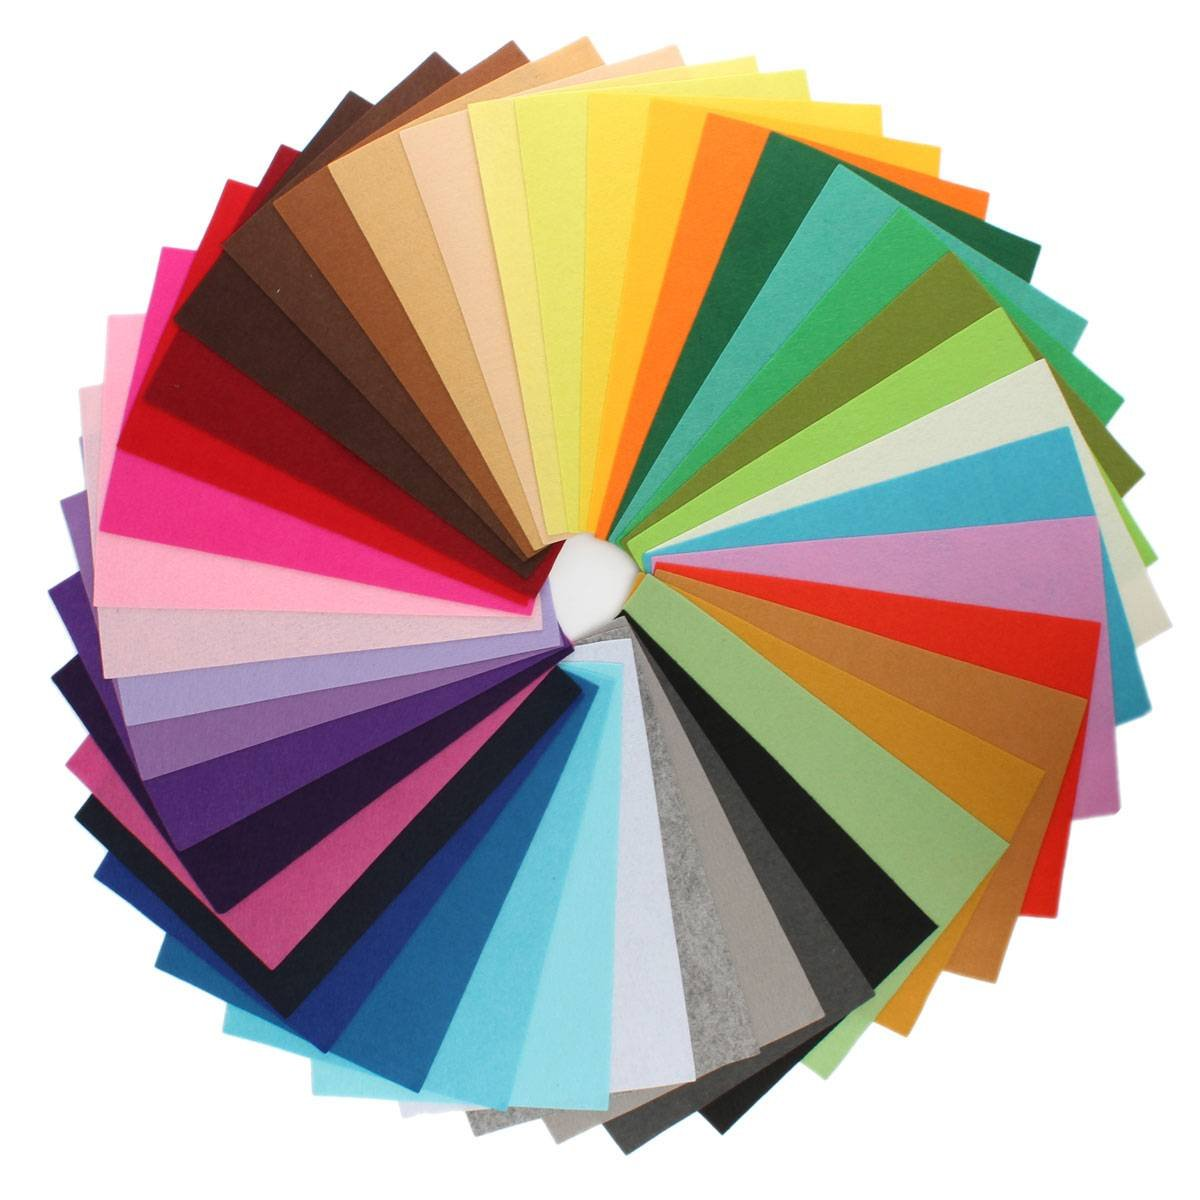 KINGSO 42PCS 8 x 12 Inches Assorted Color Felt Fabric Sheets Patchwork Sewing for DIY Craft, 1mm Thick KINGSOkijop1302